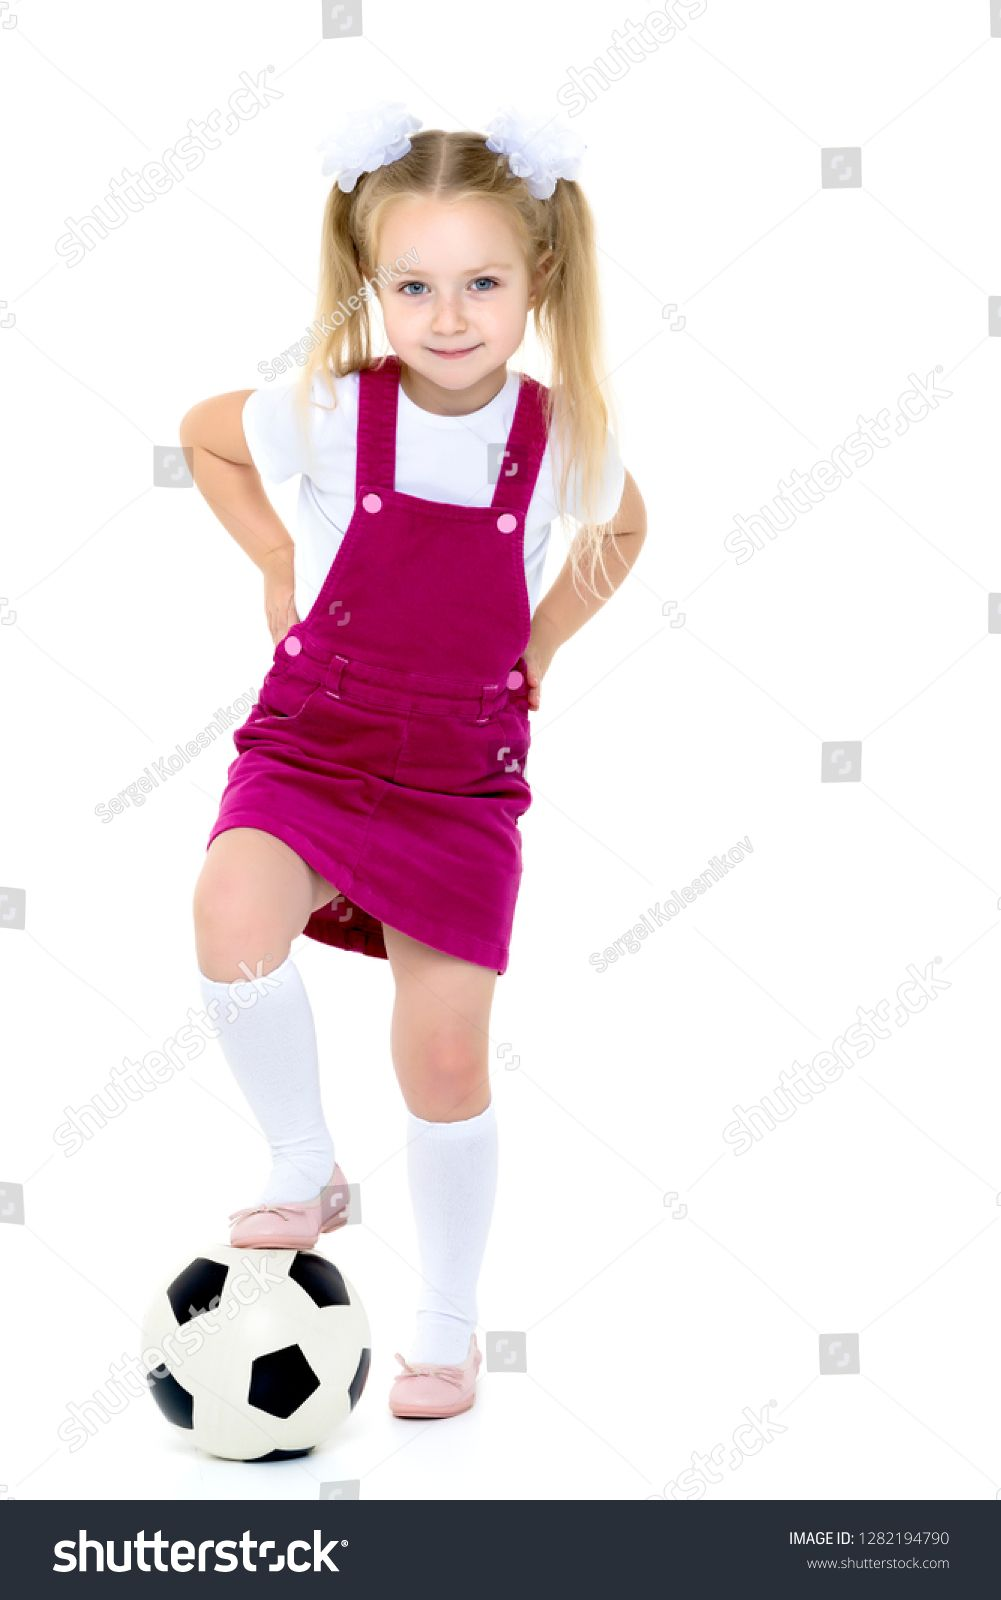 Adorable Little Girl With A Soccer Ball The Concept Of Children S Sports Summer Outdoor Recreation Isolated On Wh Girls Soccer Cute Little Girls Soccer Ball